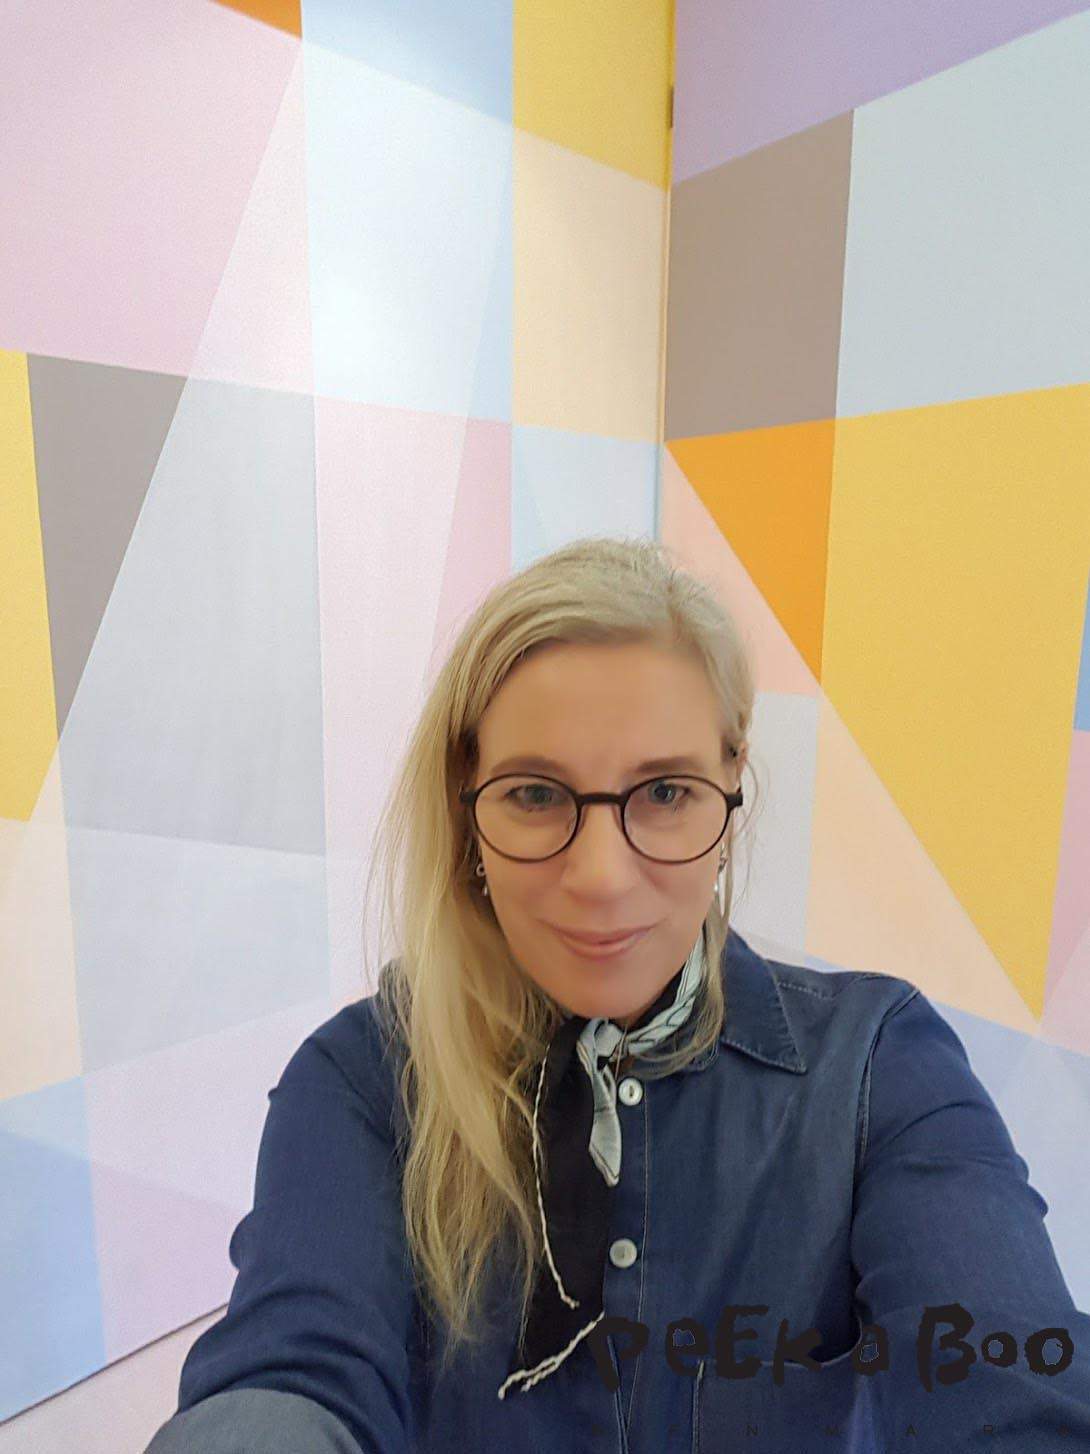 I got a bit carried away by the beaty of this room and made a happy selfie wearing my Bessie dress and Aluminium glasses from Louis Nielsen.